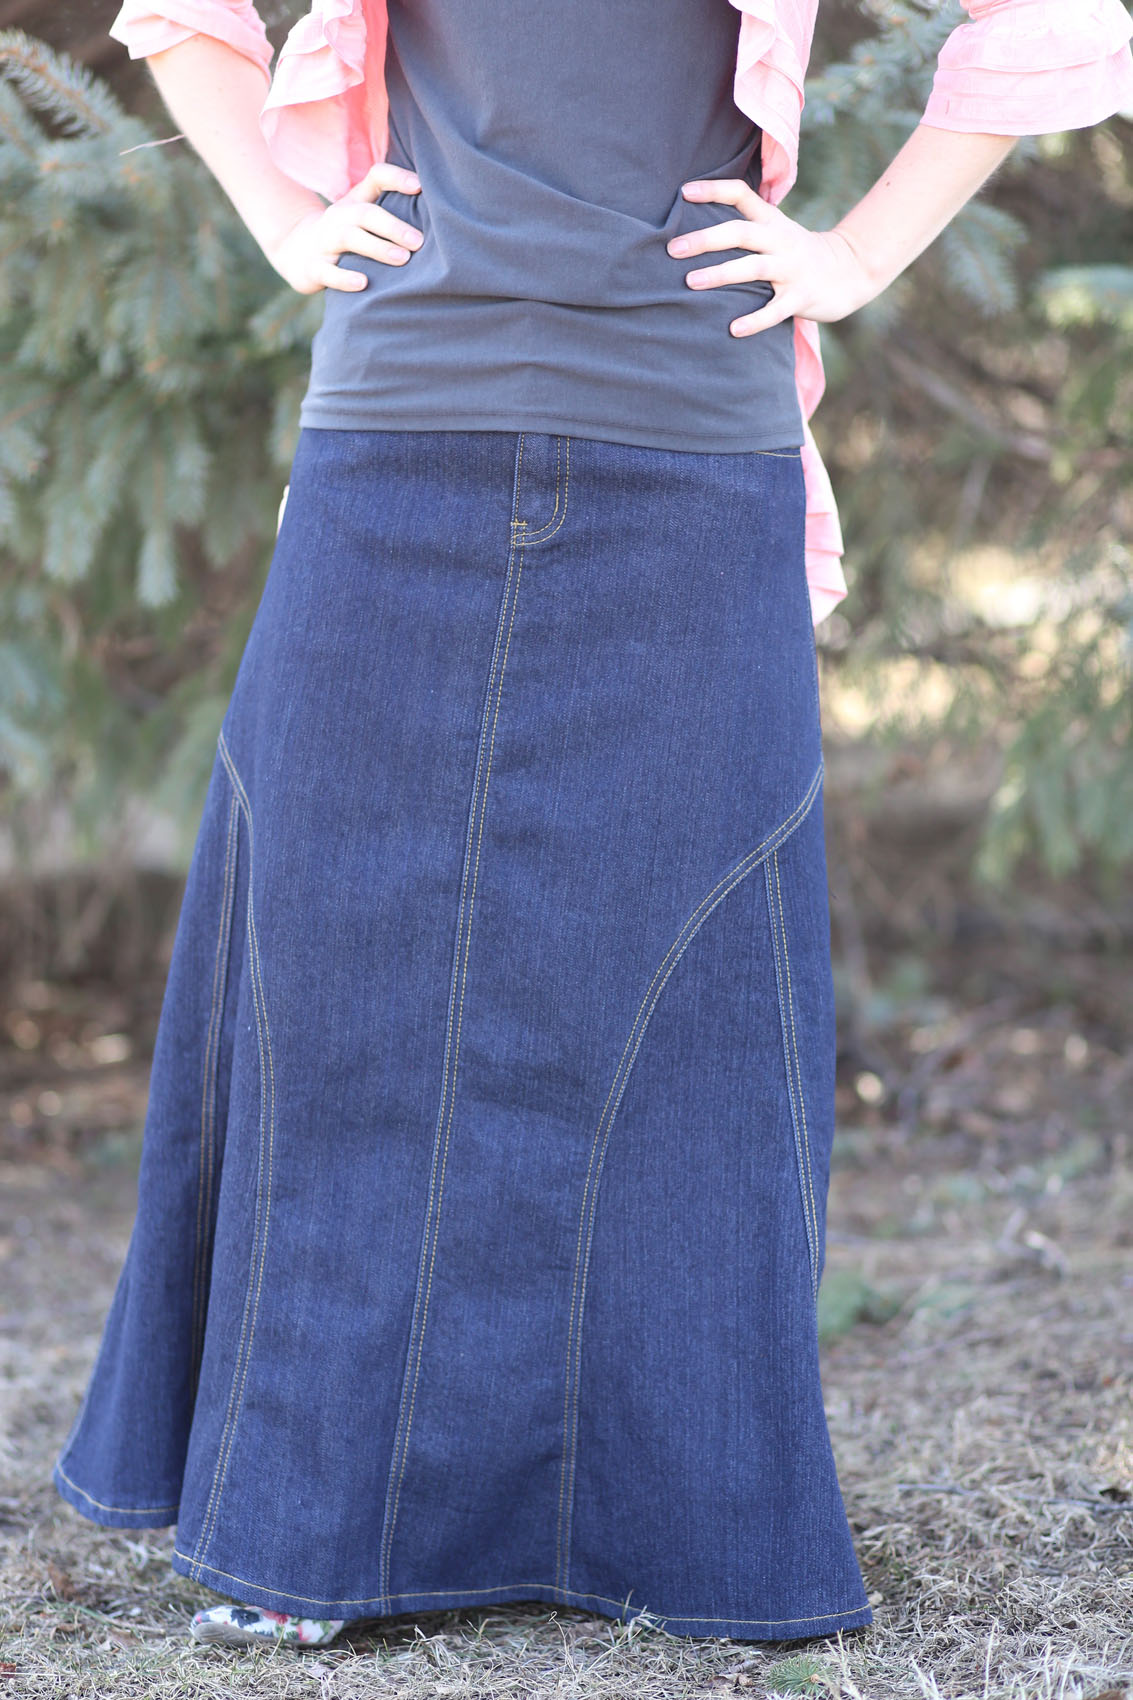 TheMogan Women's Vintage Washed Blue Jean Pencil Midi Soft Denim Skirt. Sold by TheMogan. $ $ Create an elegant look with juniors' skirts for Sears. Spice up her wardrobe all year long with the right skirts for juniors.